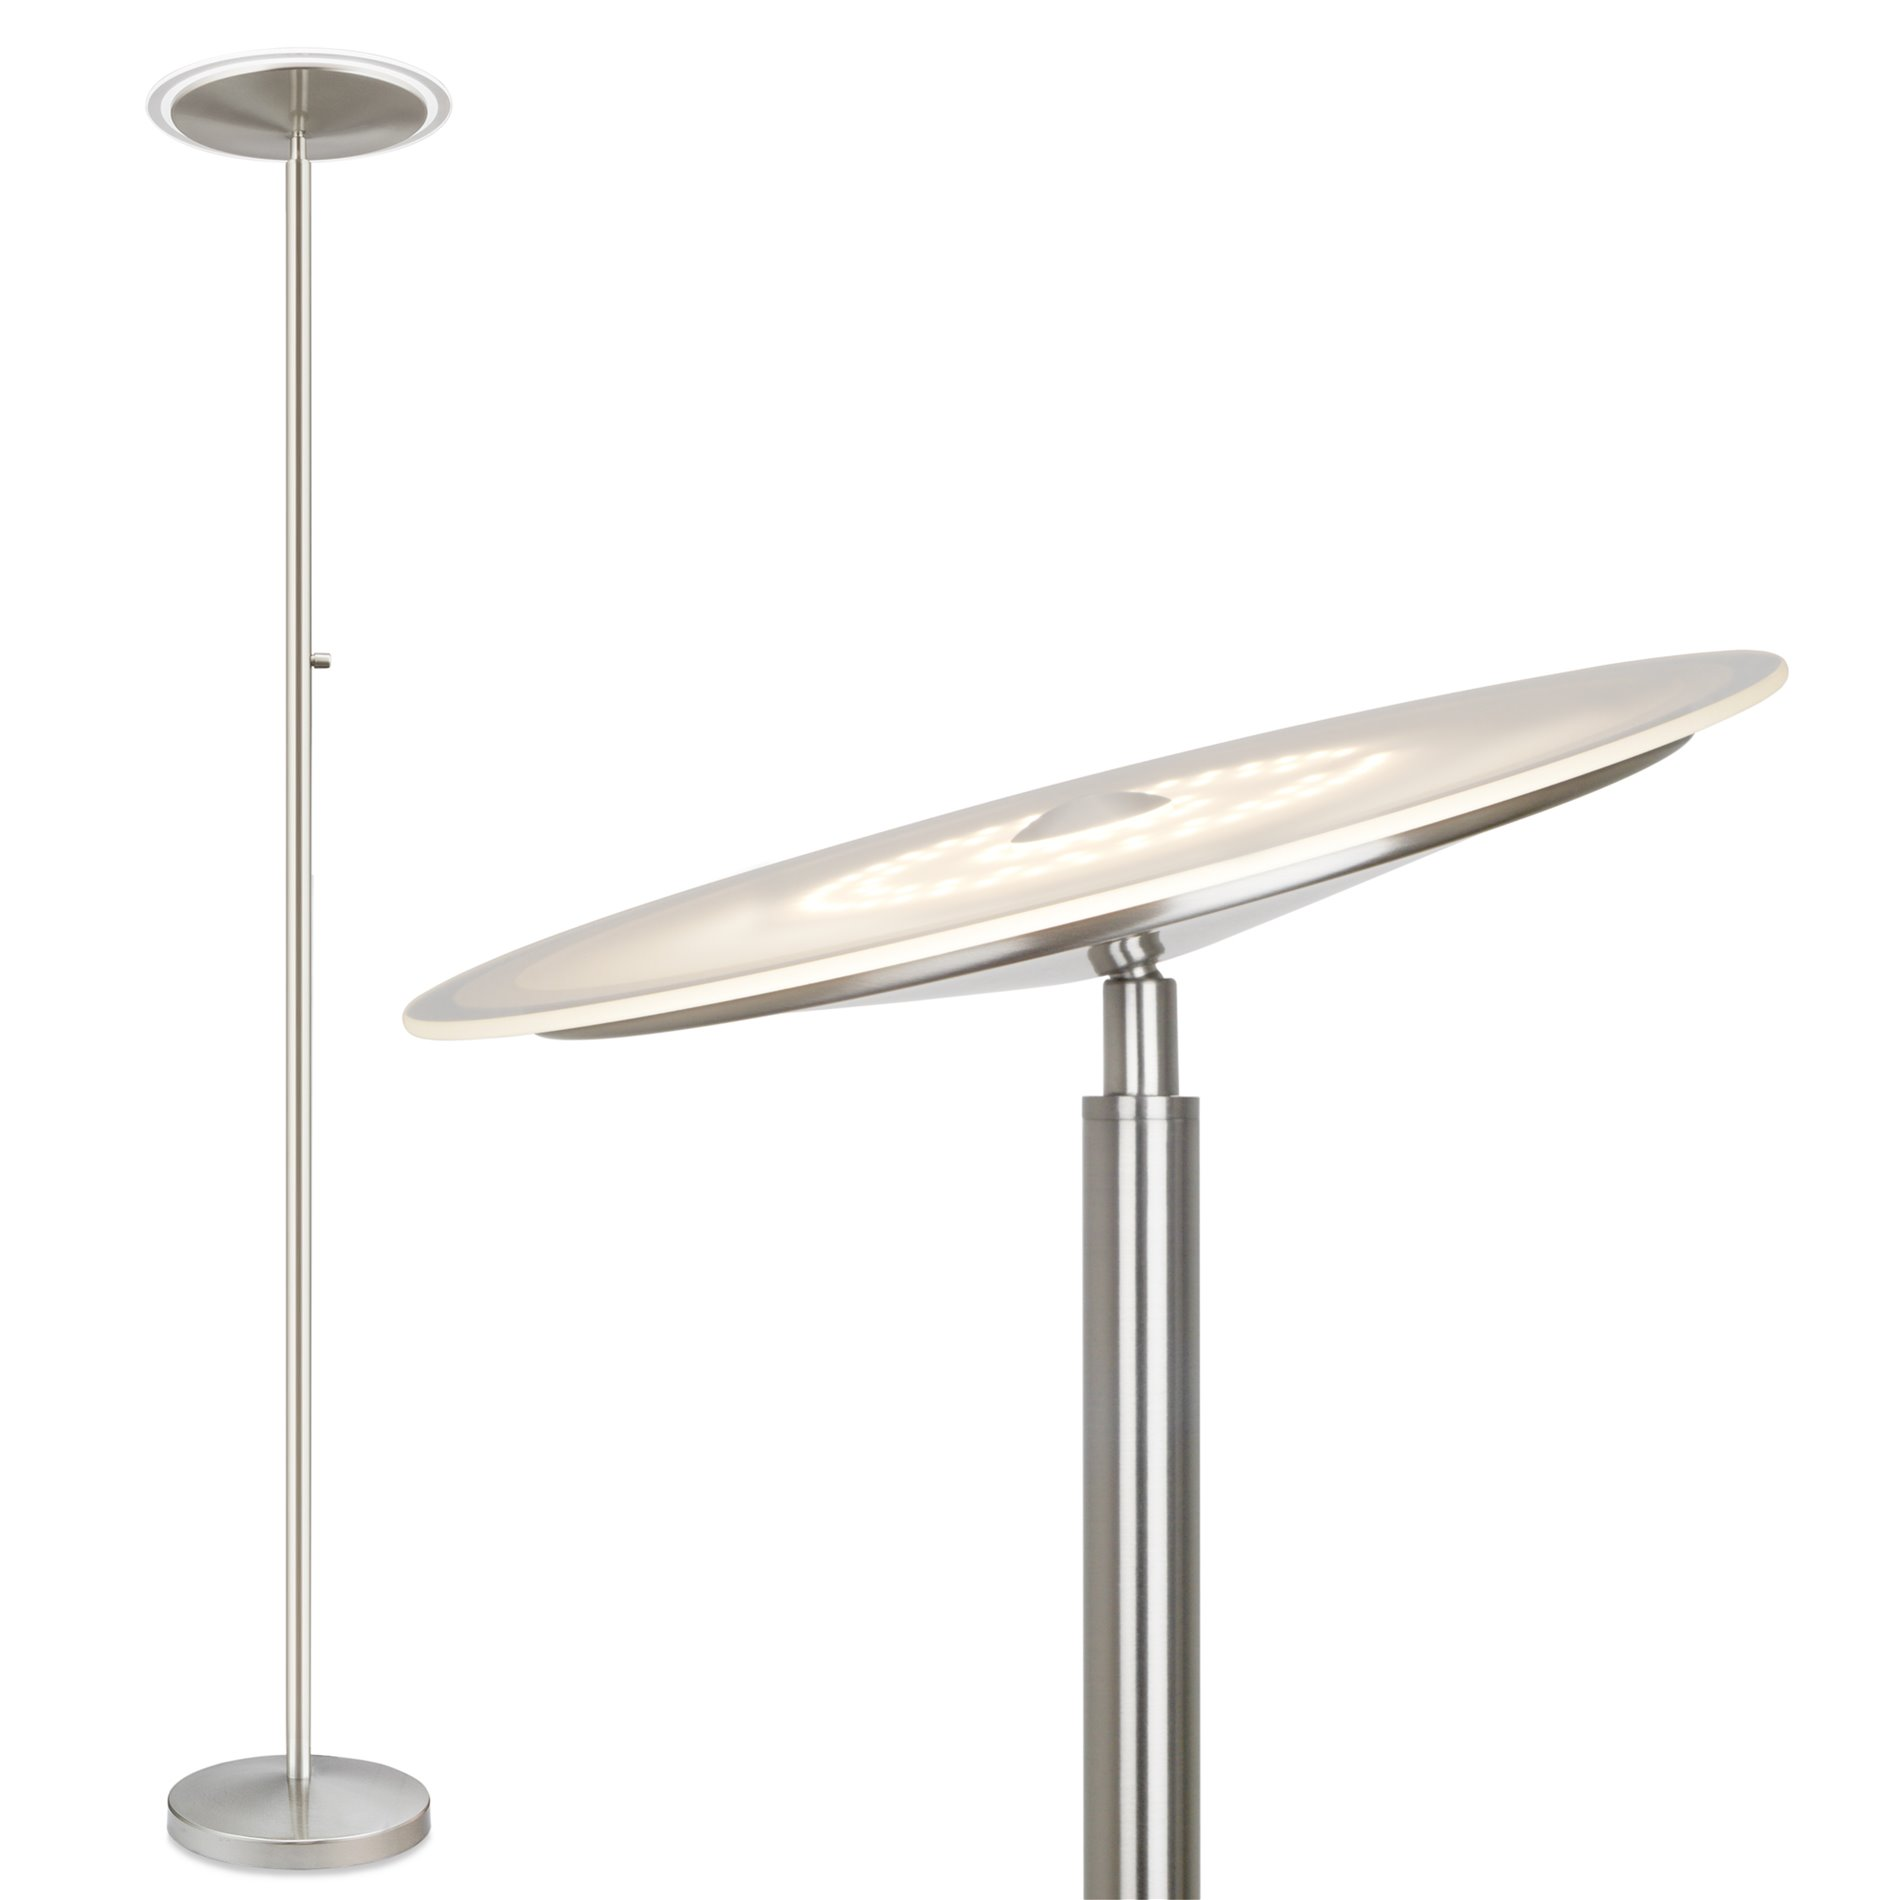 Silver 57in 700 Lumens Adjustable LED Floor Lamp w// Remote Control 8 Levels